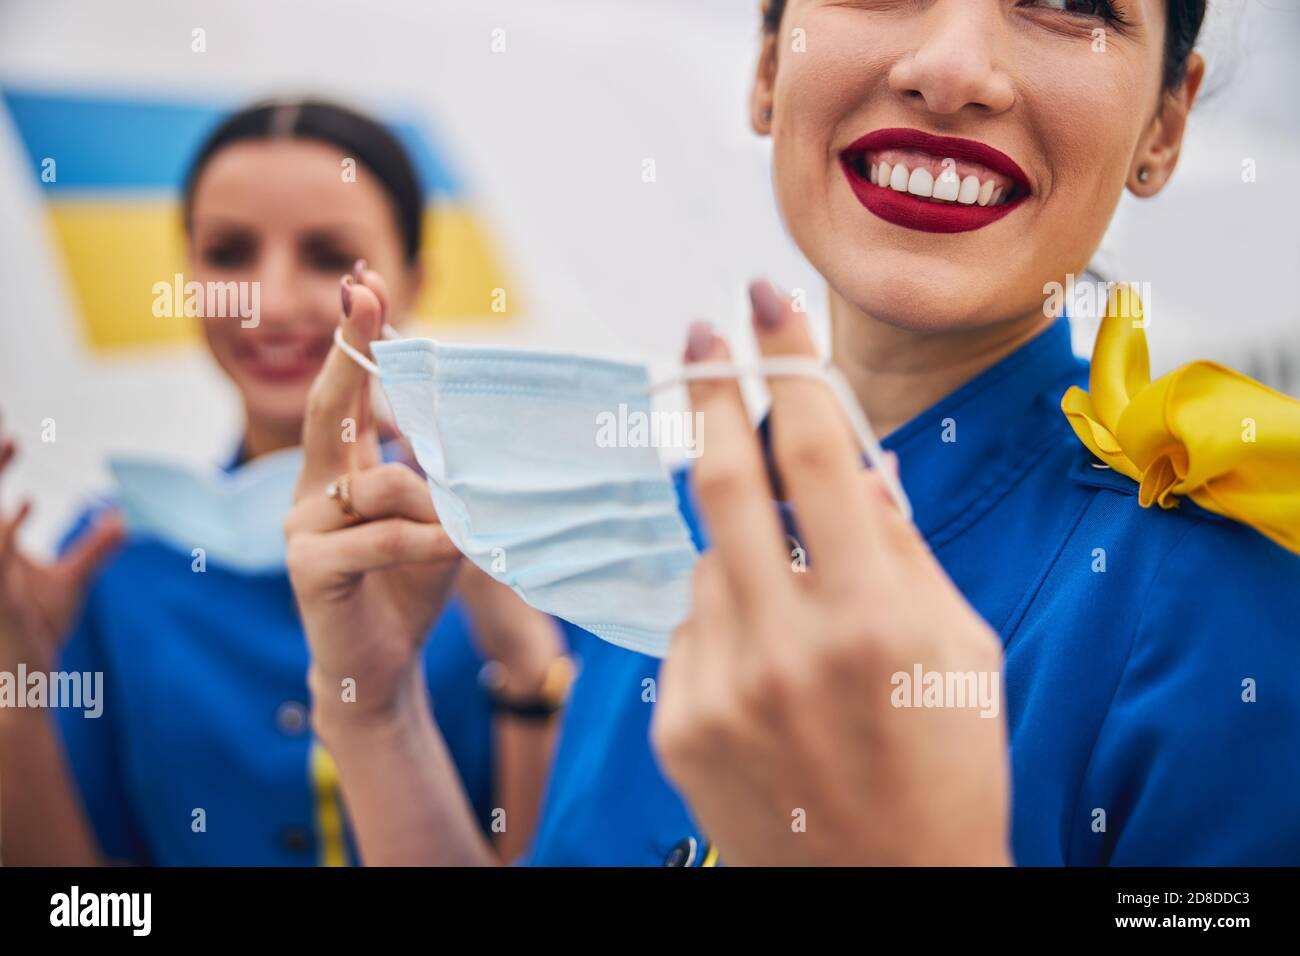 Two young flight attendants putting on face coverings Stock Photo